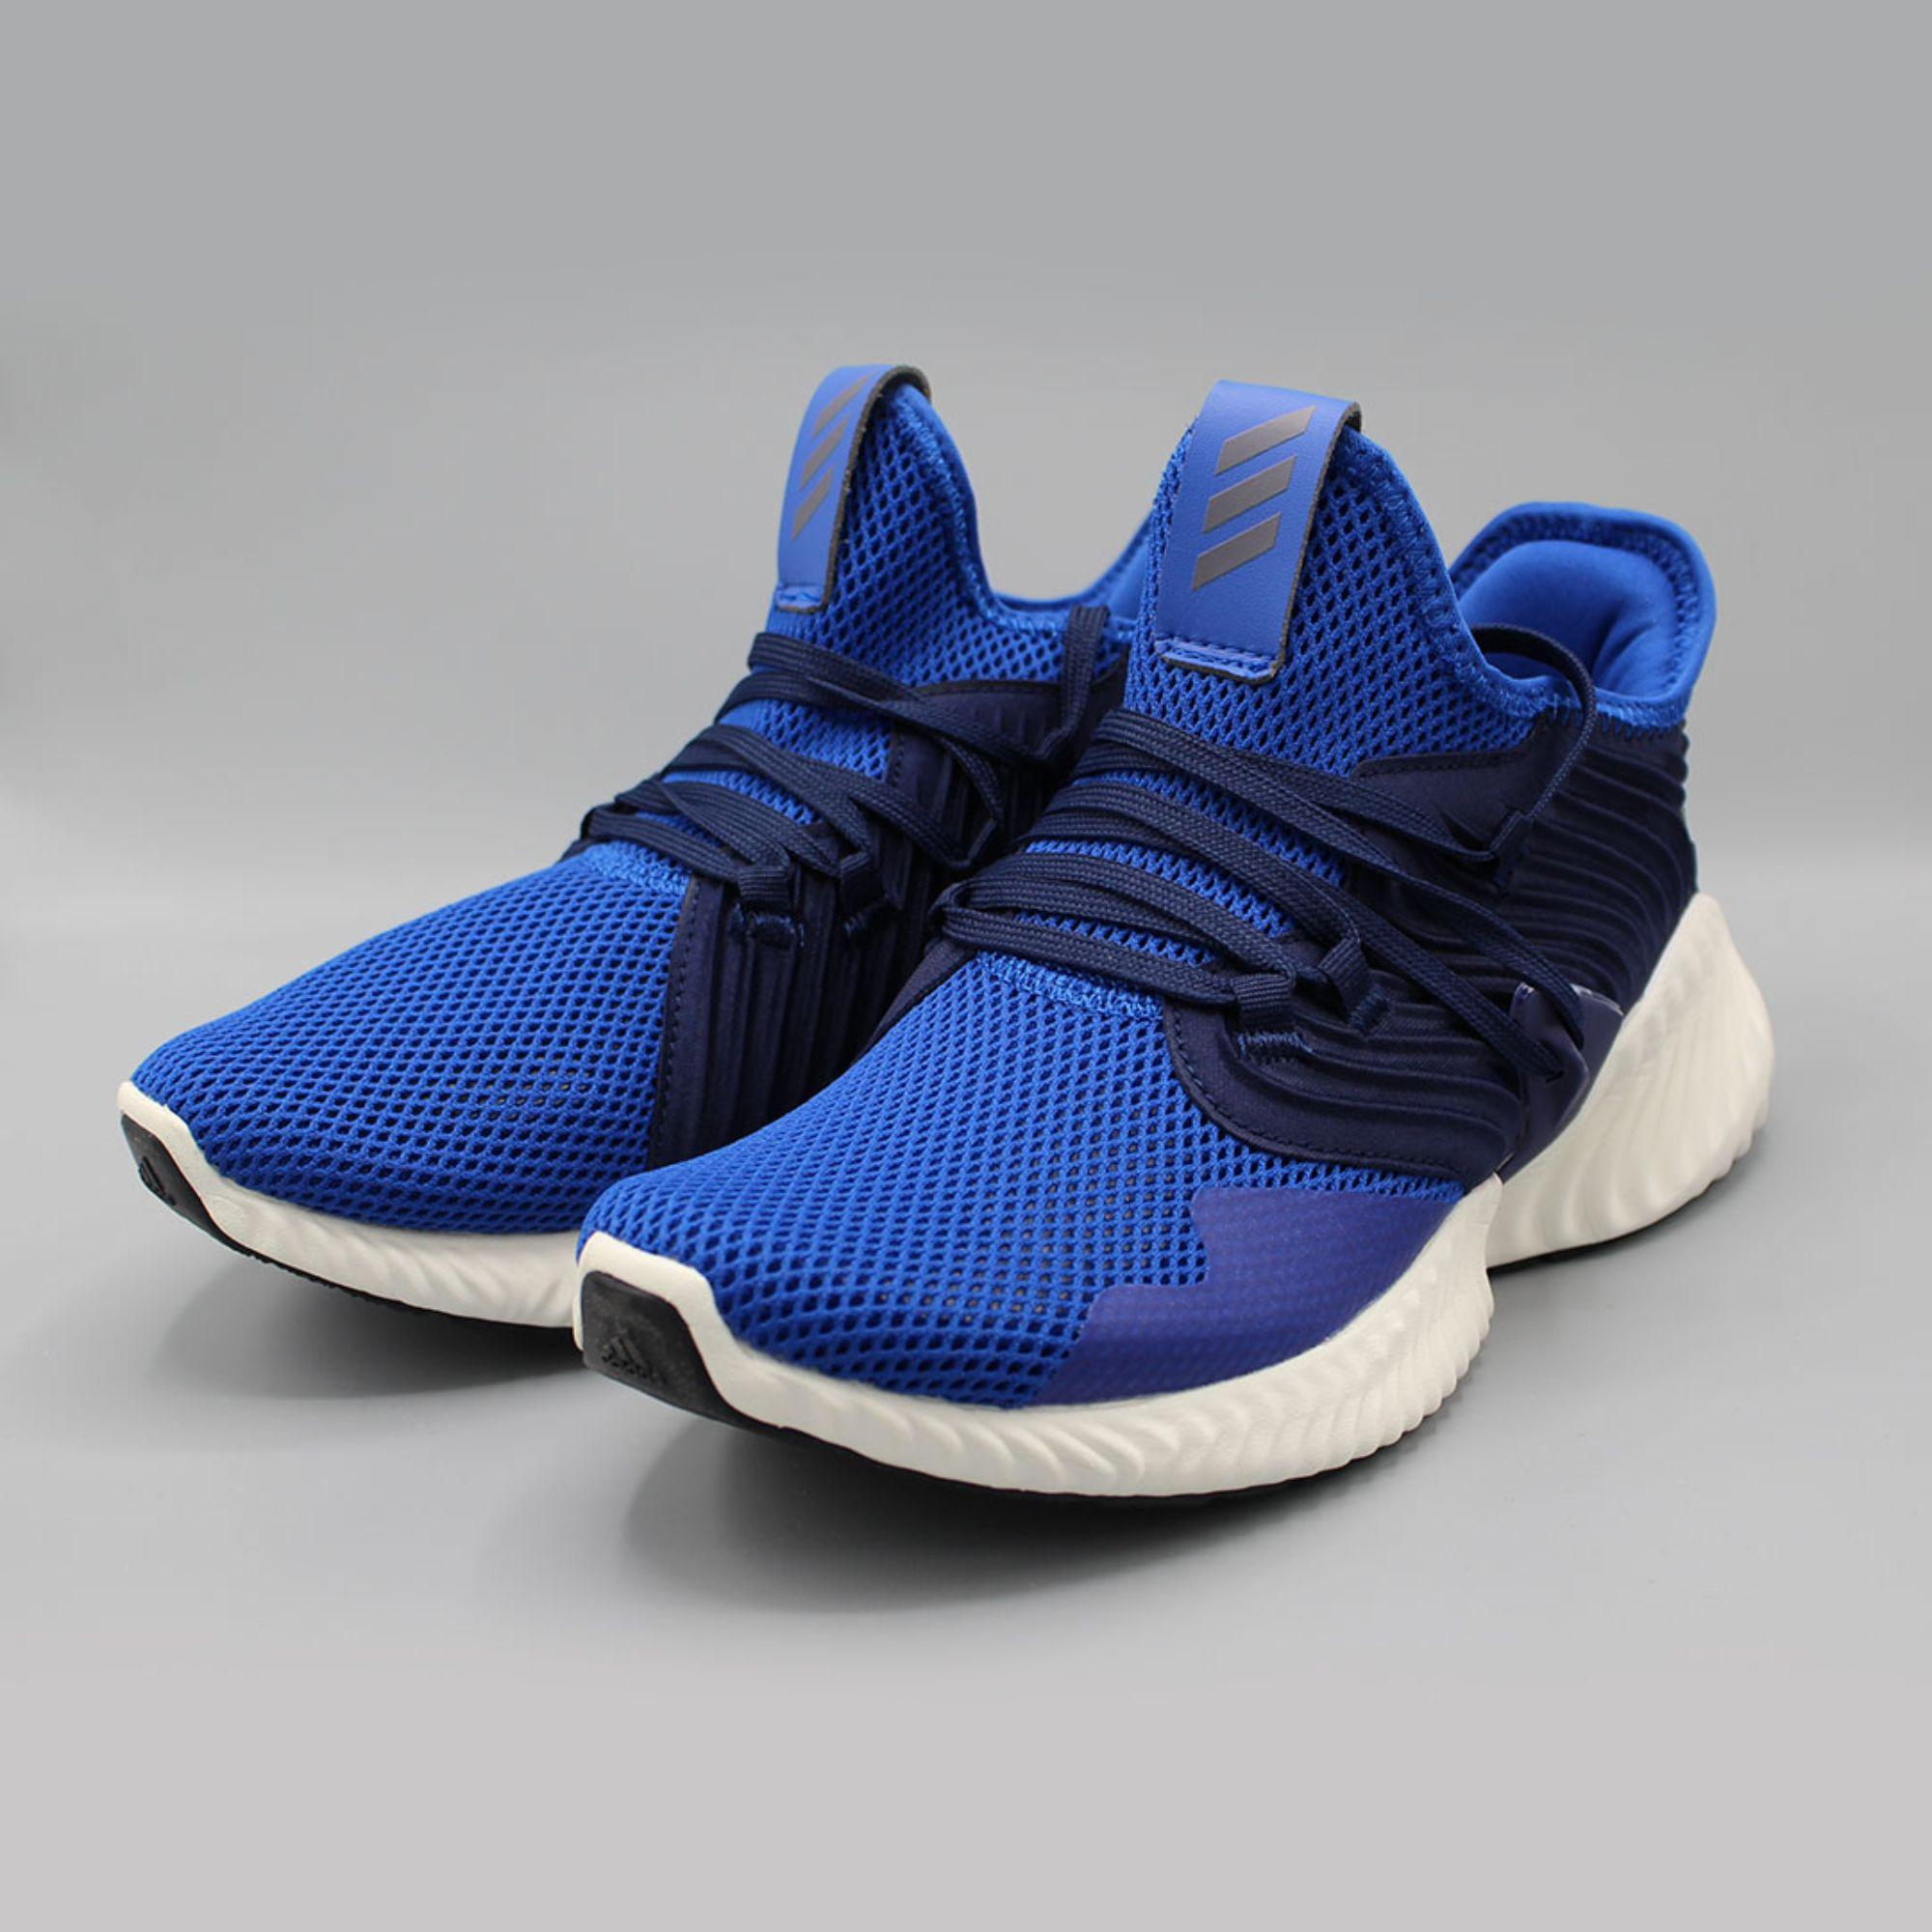 802d708f84 Original New Arrival Adidas Alpha Bounce Instinct Running Shoes For Men